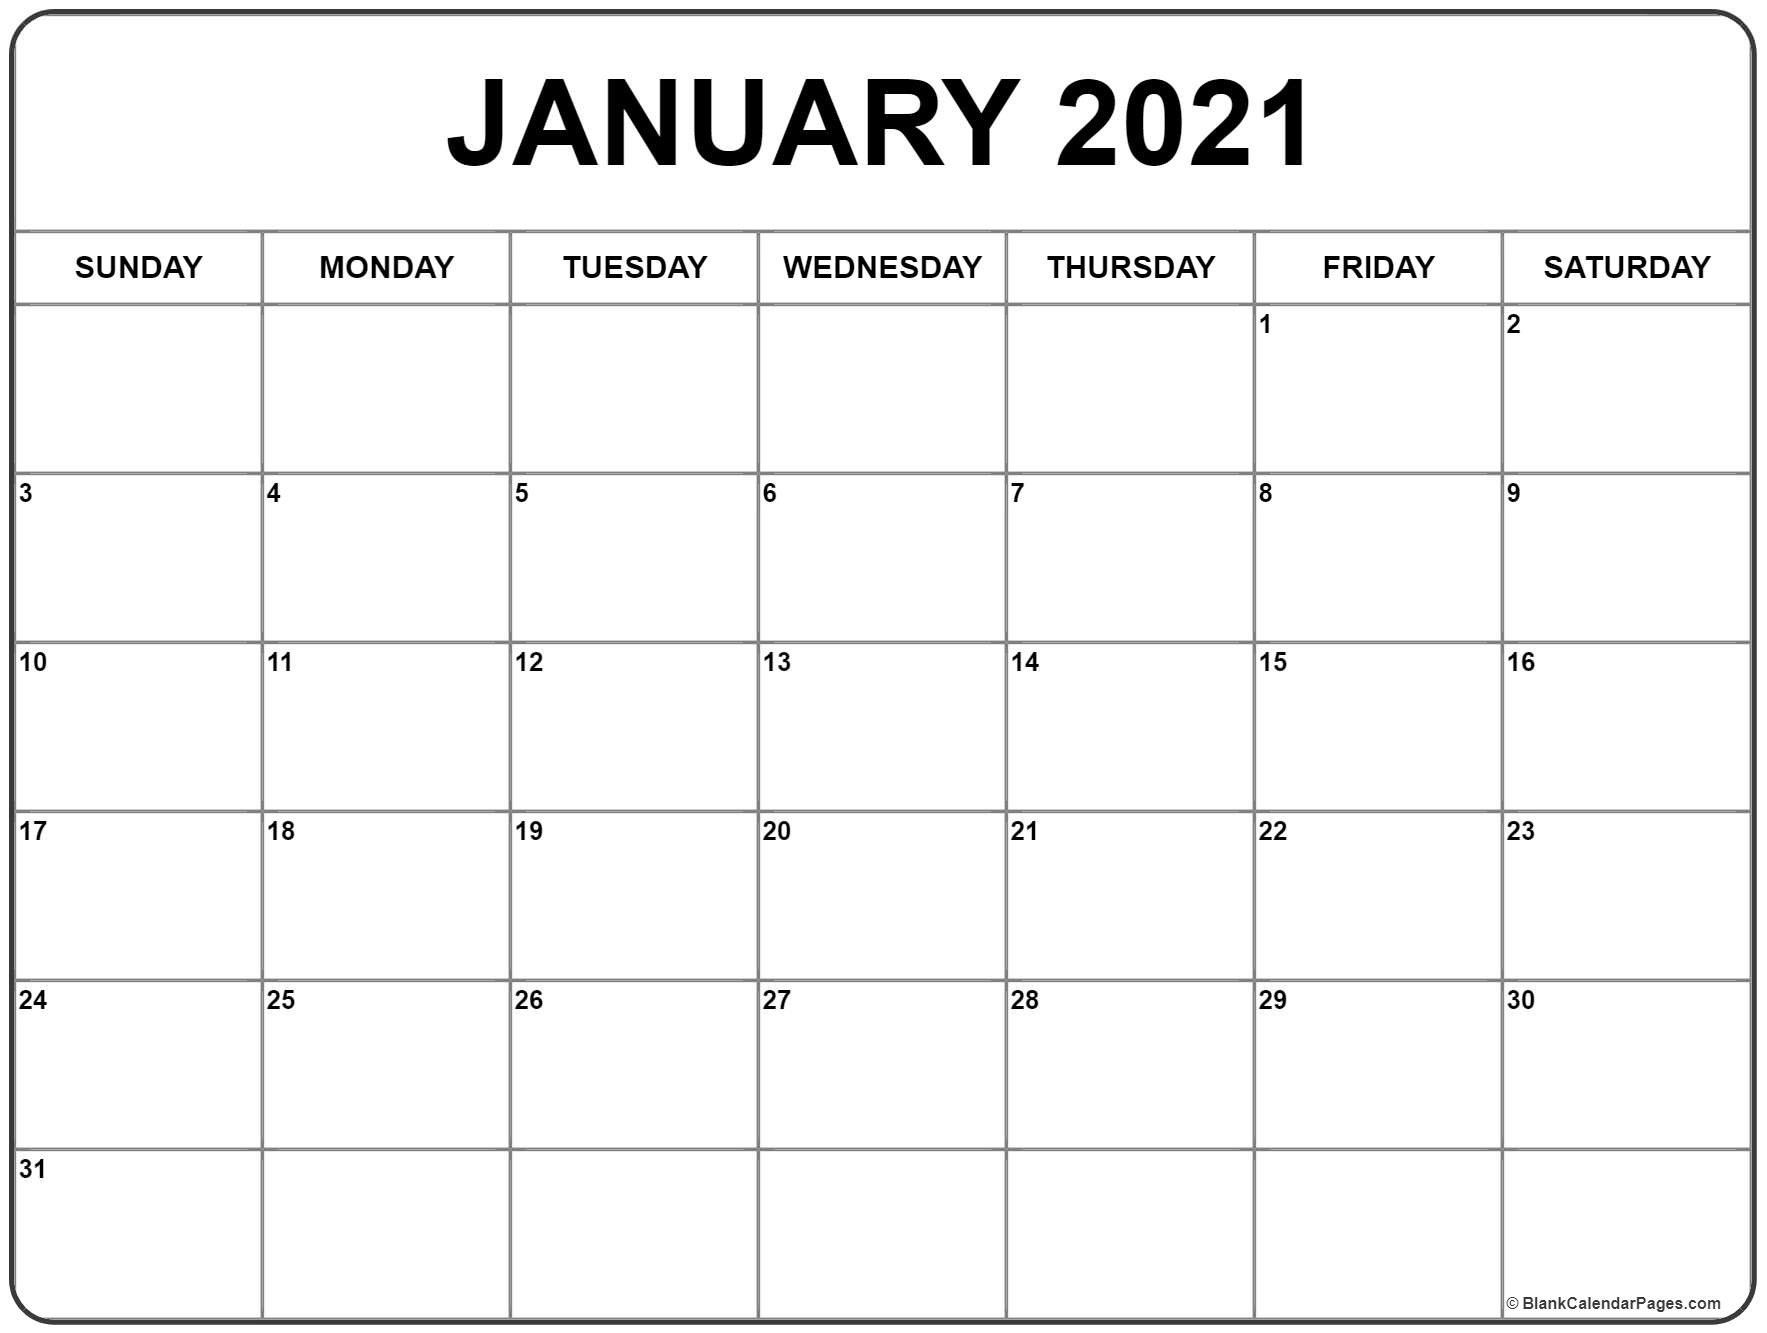 January 2021 Calendar Printable in 2020 | Monthly calendar